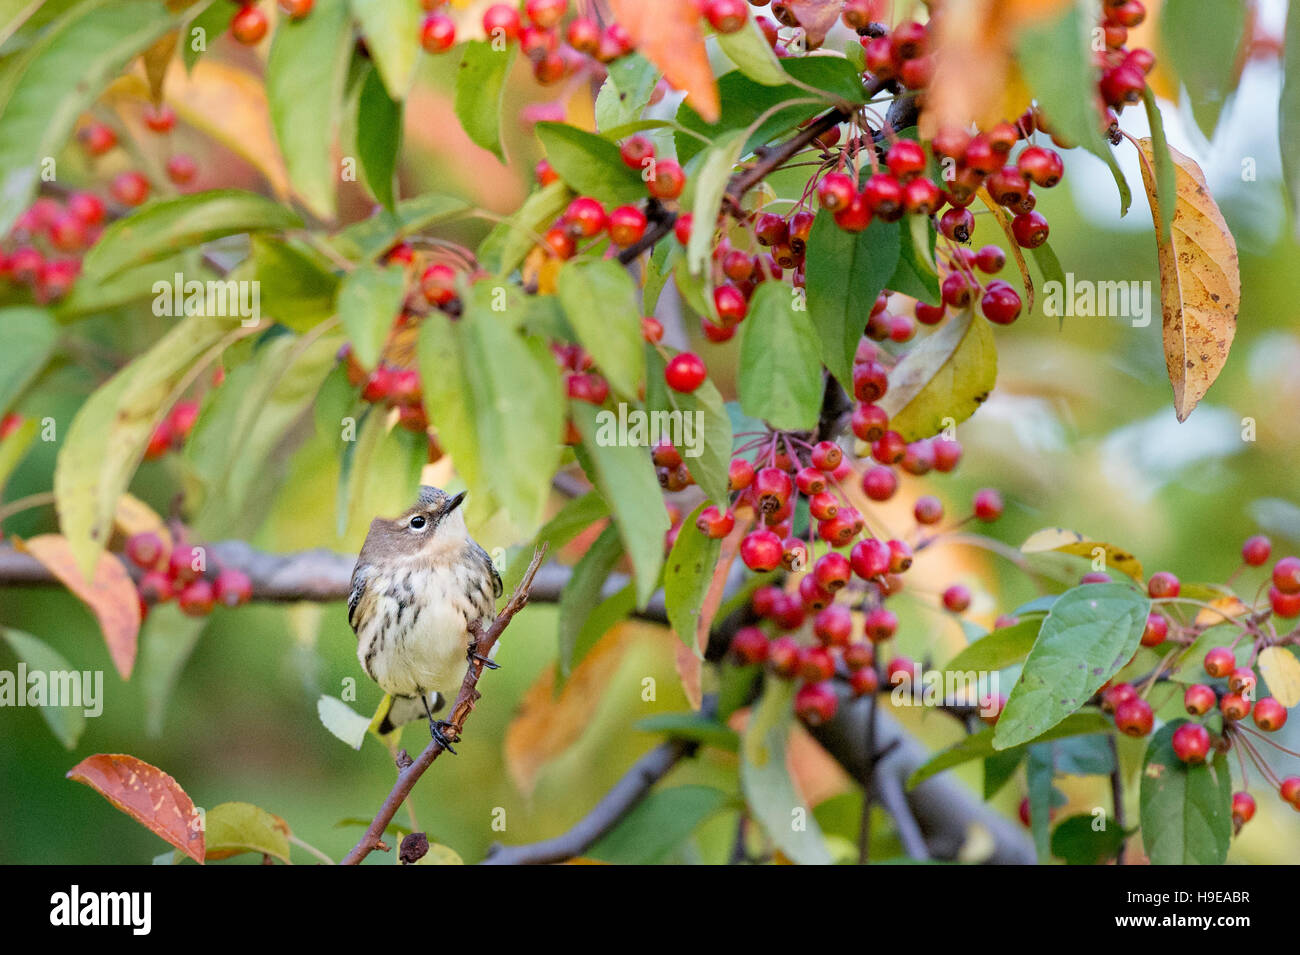 A Yellow-rumped Warbler perches in a tree filled with bright red berries and some colorful fall leaves. - Stock Image